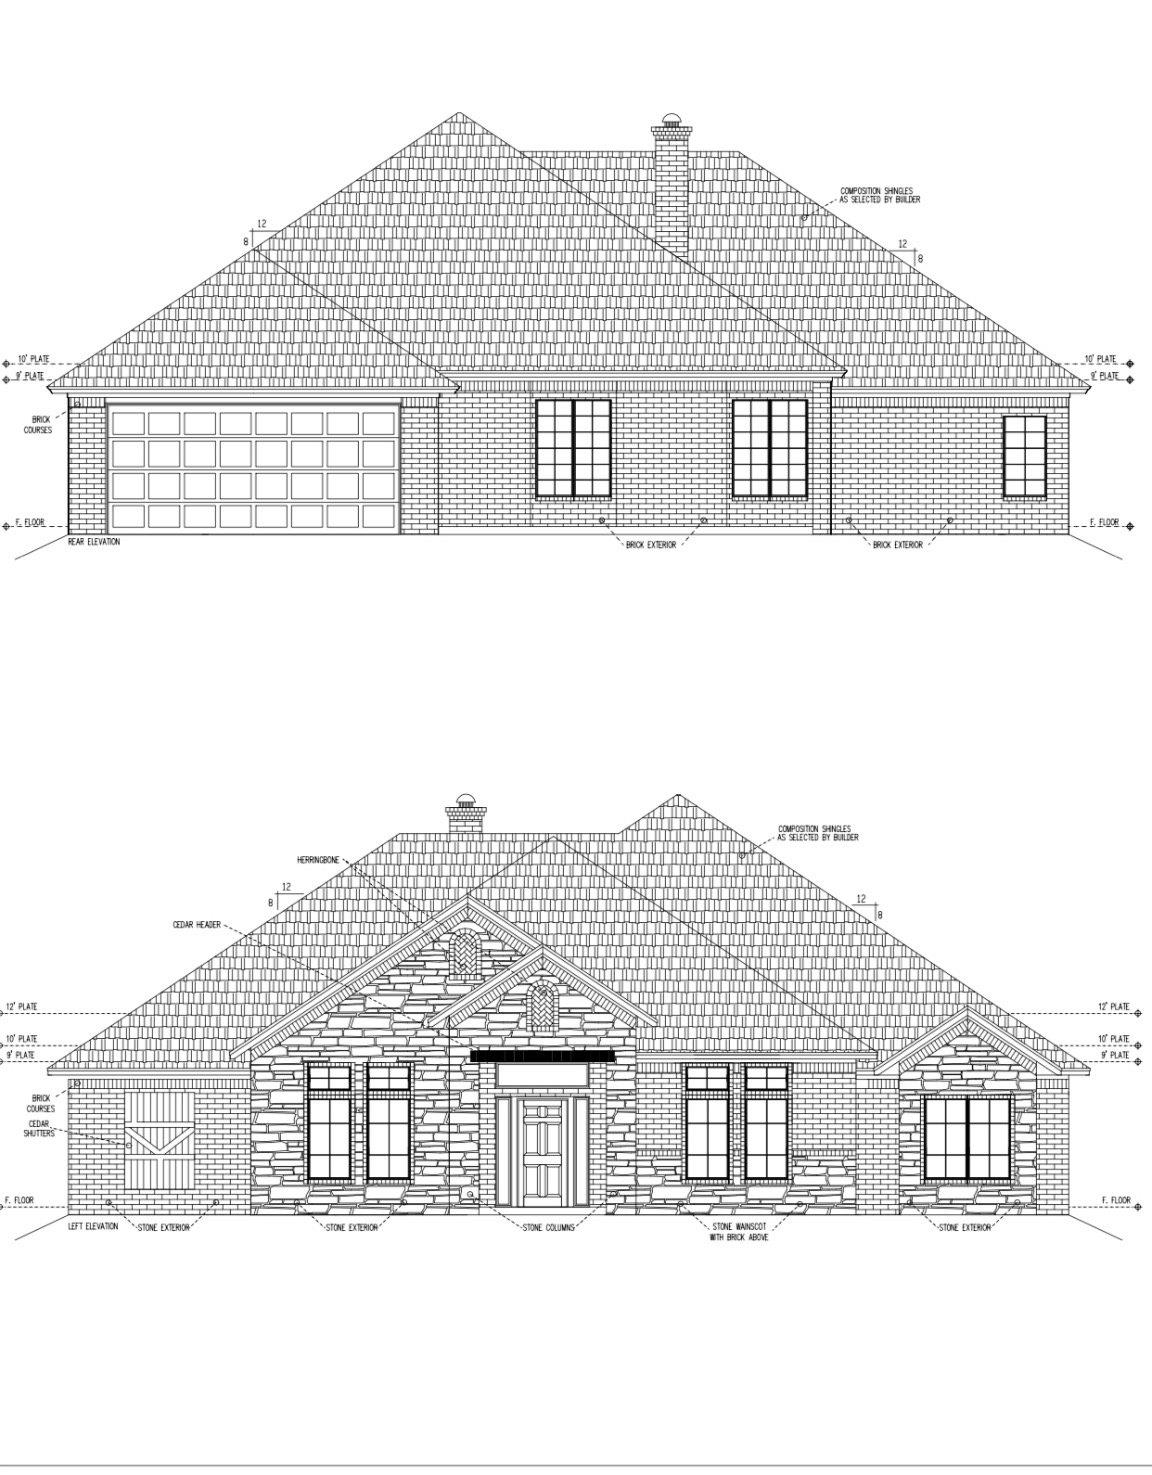 This gorgeous David Jordan Home will be perfectly situated in the new tree lined development of Stratfod Pointe.  This neighborhood is situated on the quiet outskirts of town, but so close to the conveniences of nearby schools, restaurants and grocery stores.  This home will be just short of 2500 square feet.  It has a stunning open concept feel with unique ceilings, rich vinyl plank floors and a beautiful Austin Stone fireplace.  It boasts of 4 spacious   bedrooms, 3 bathrooms - all of which have granite, and has a chef's dream kitchen.  The covered porch will be the perfect spot to watch those colorful West Texas sunsets.  The home is set to be complete in May - so, you can still pick out some of the finishes!  Call me TODAY for a personal tour.